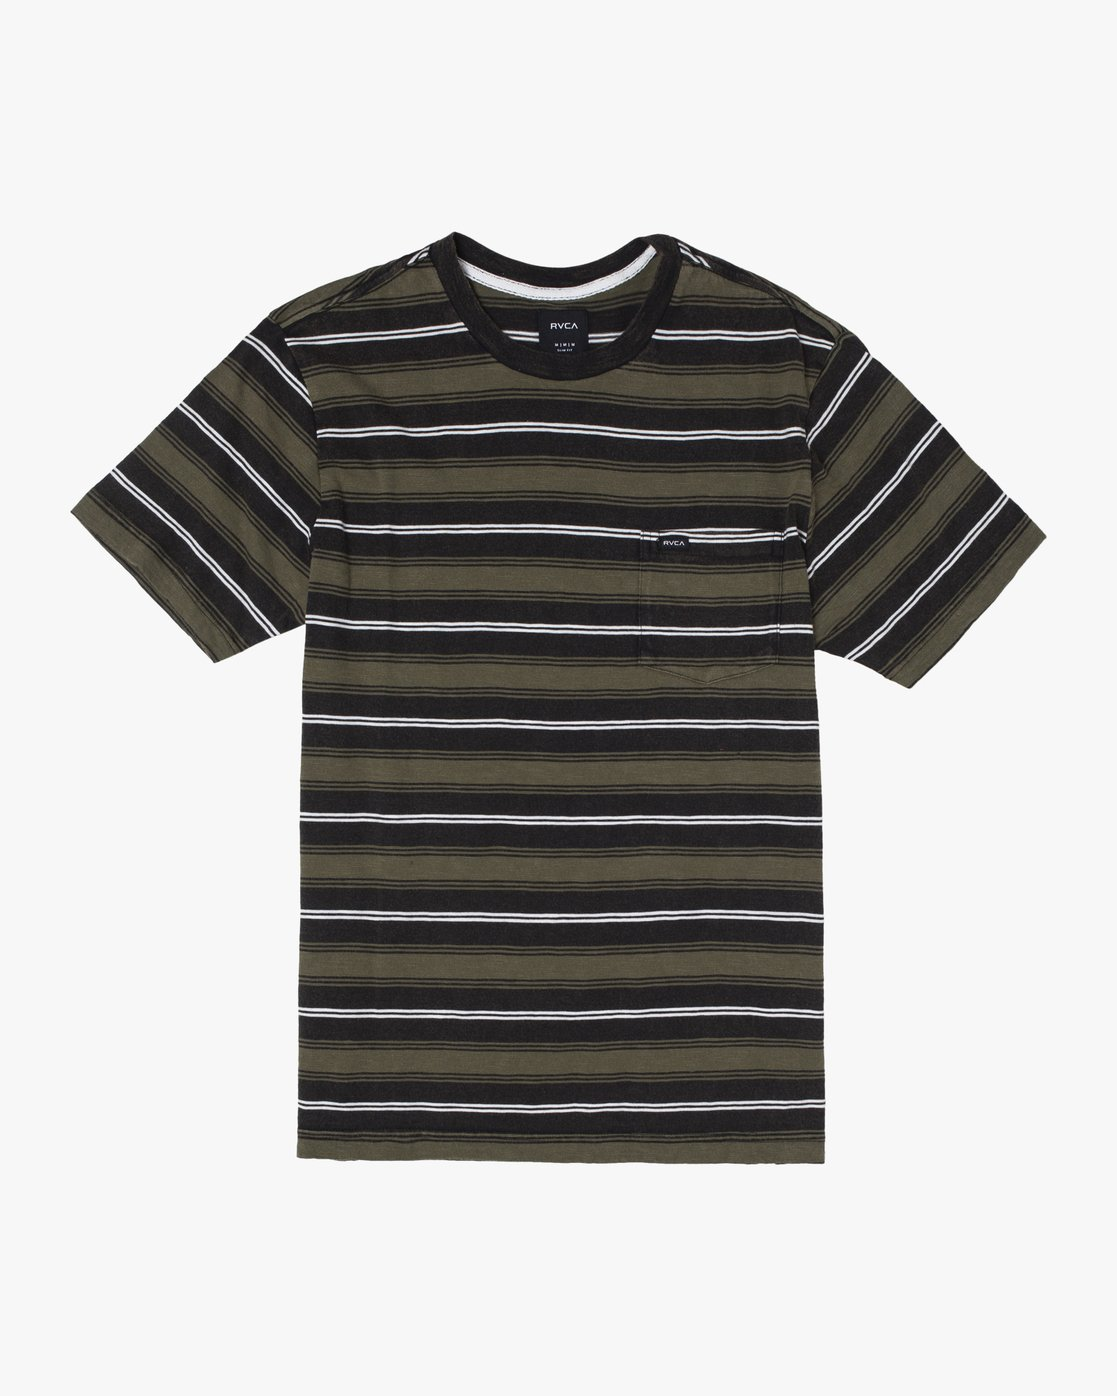 0 DAVIS STRIPE SHORT SLEEVE Knit Tee Black M9052RDS RVCA